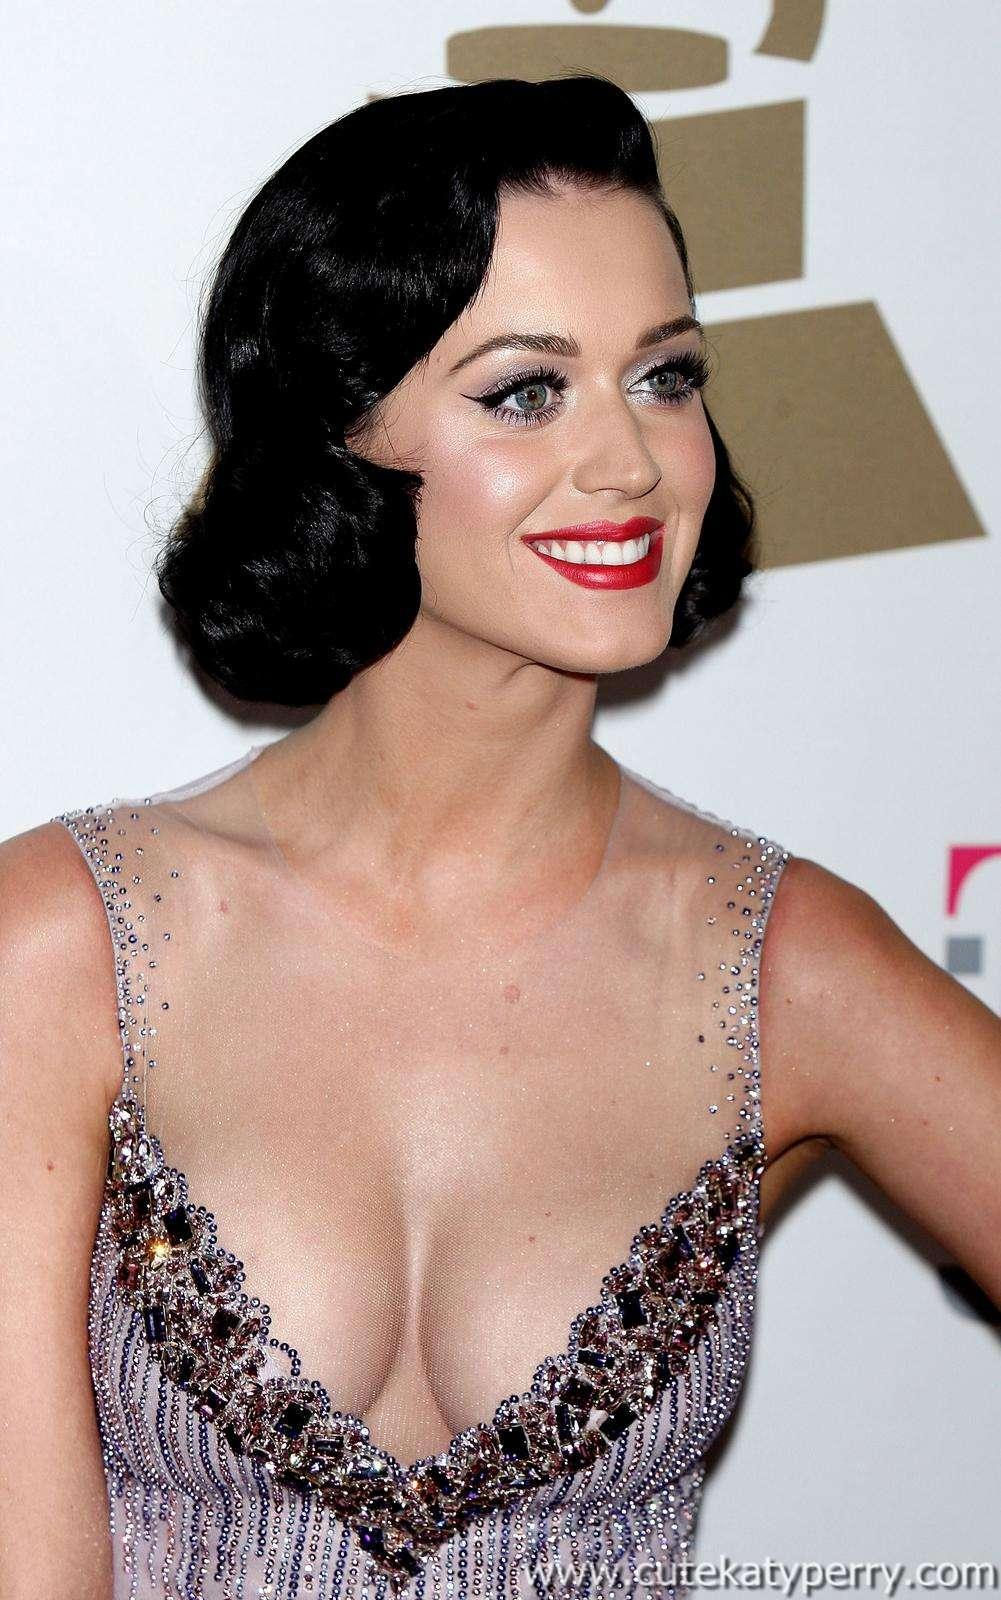 katy perry hot boobs